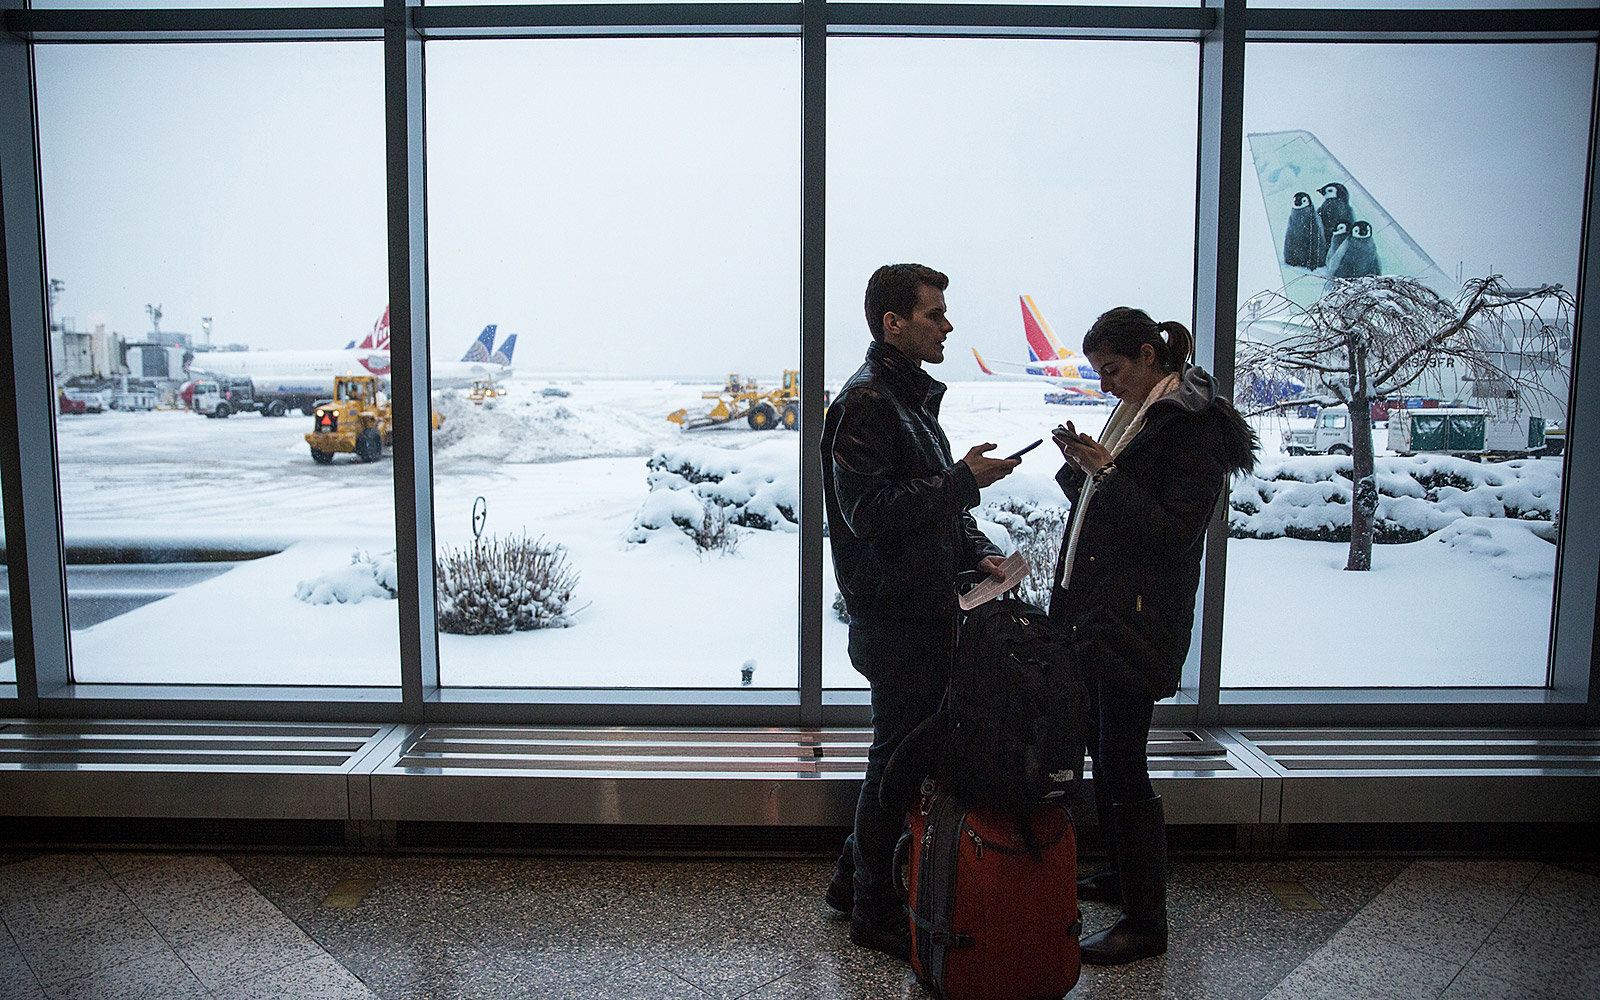 Airline waivers because of storm